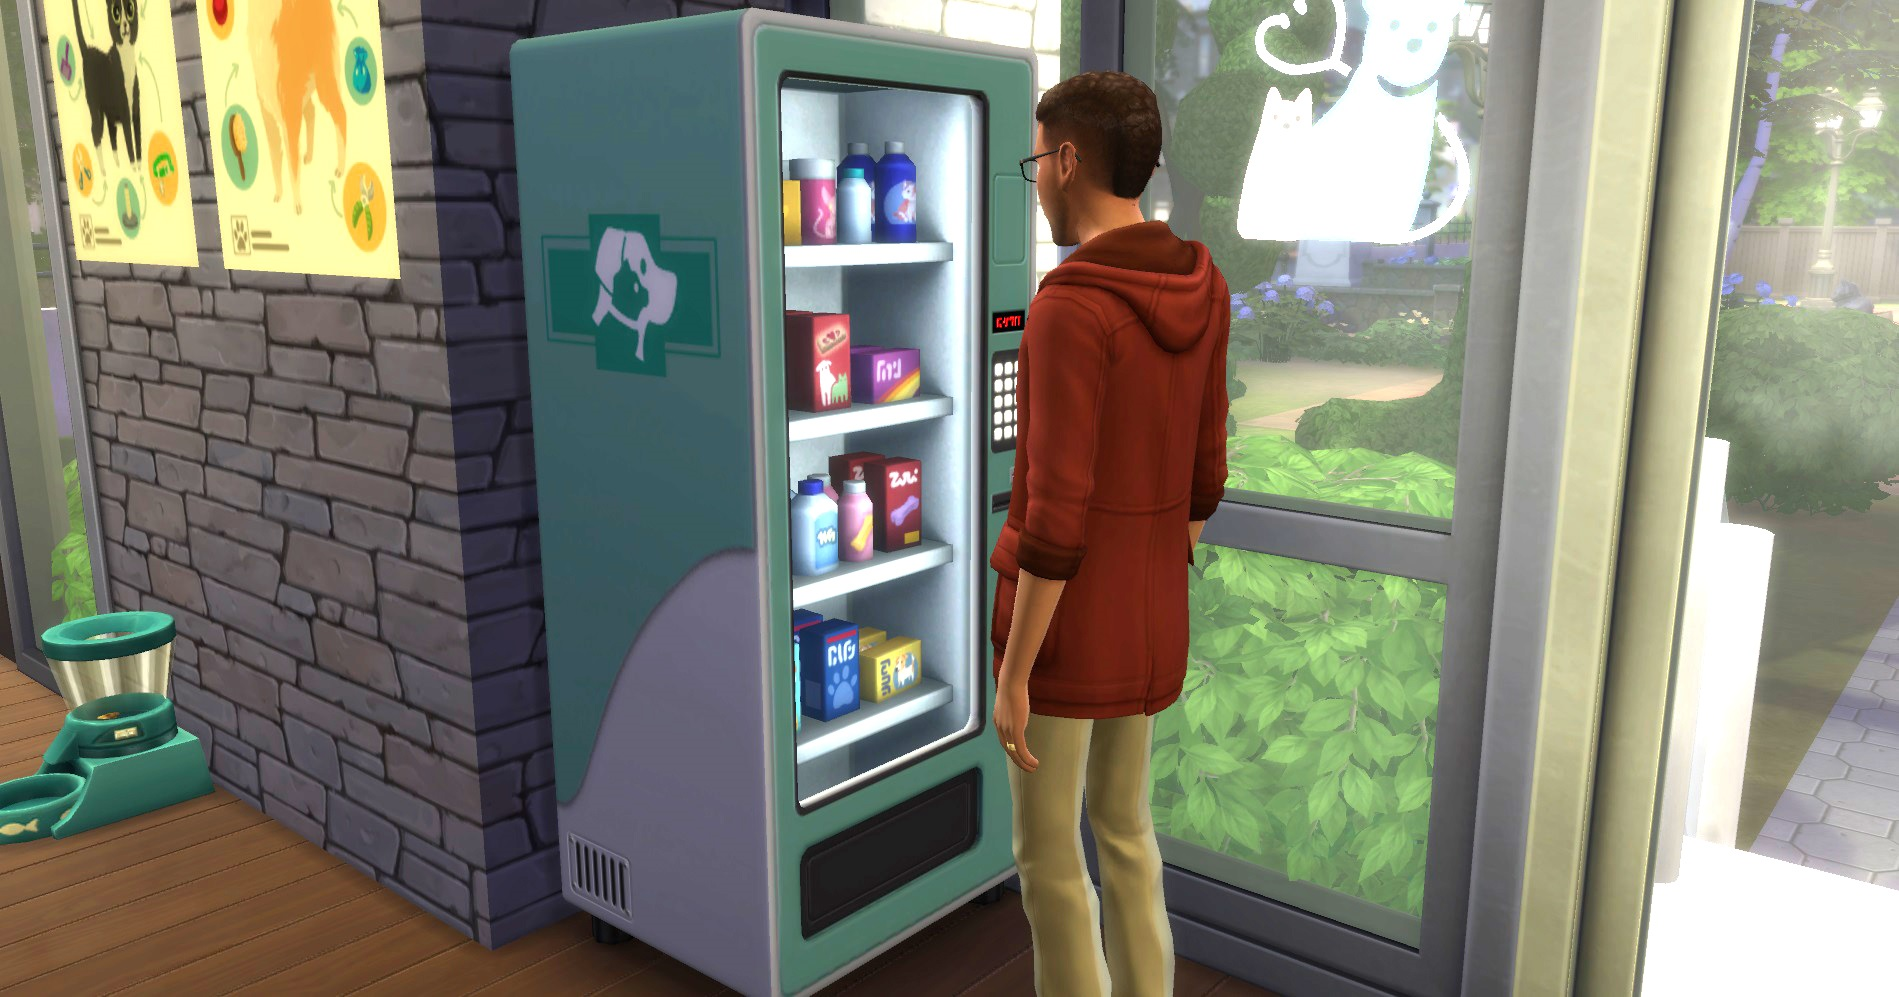 les_sims_4_chiens_chats_friandises